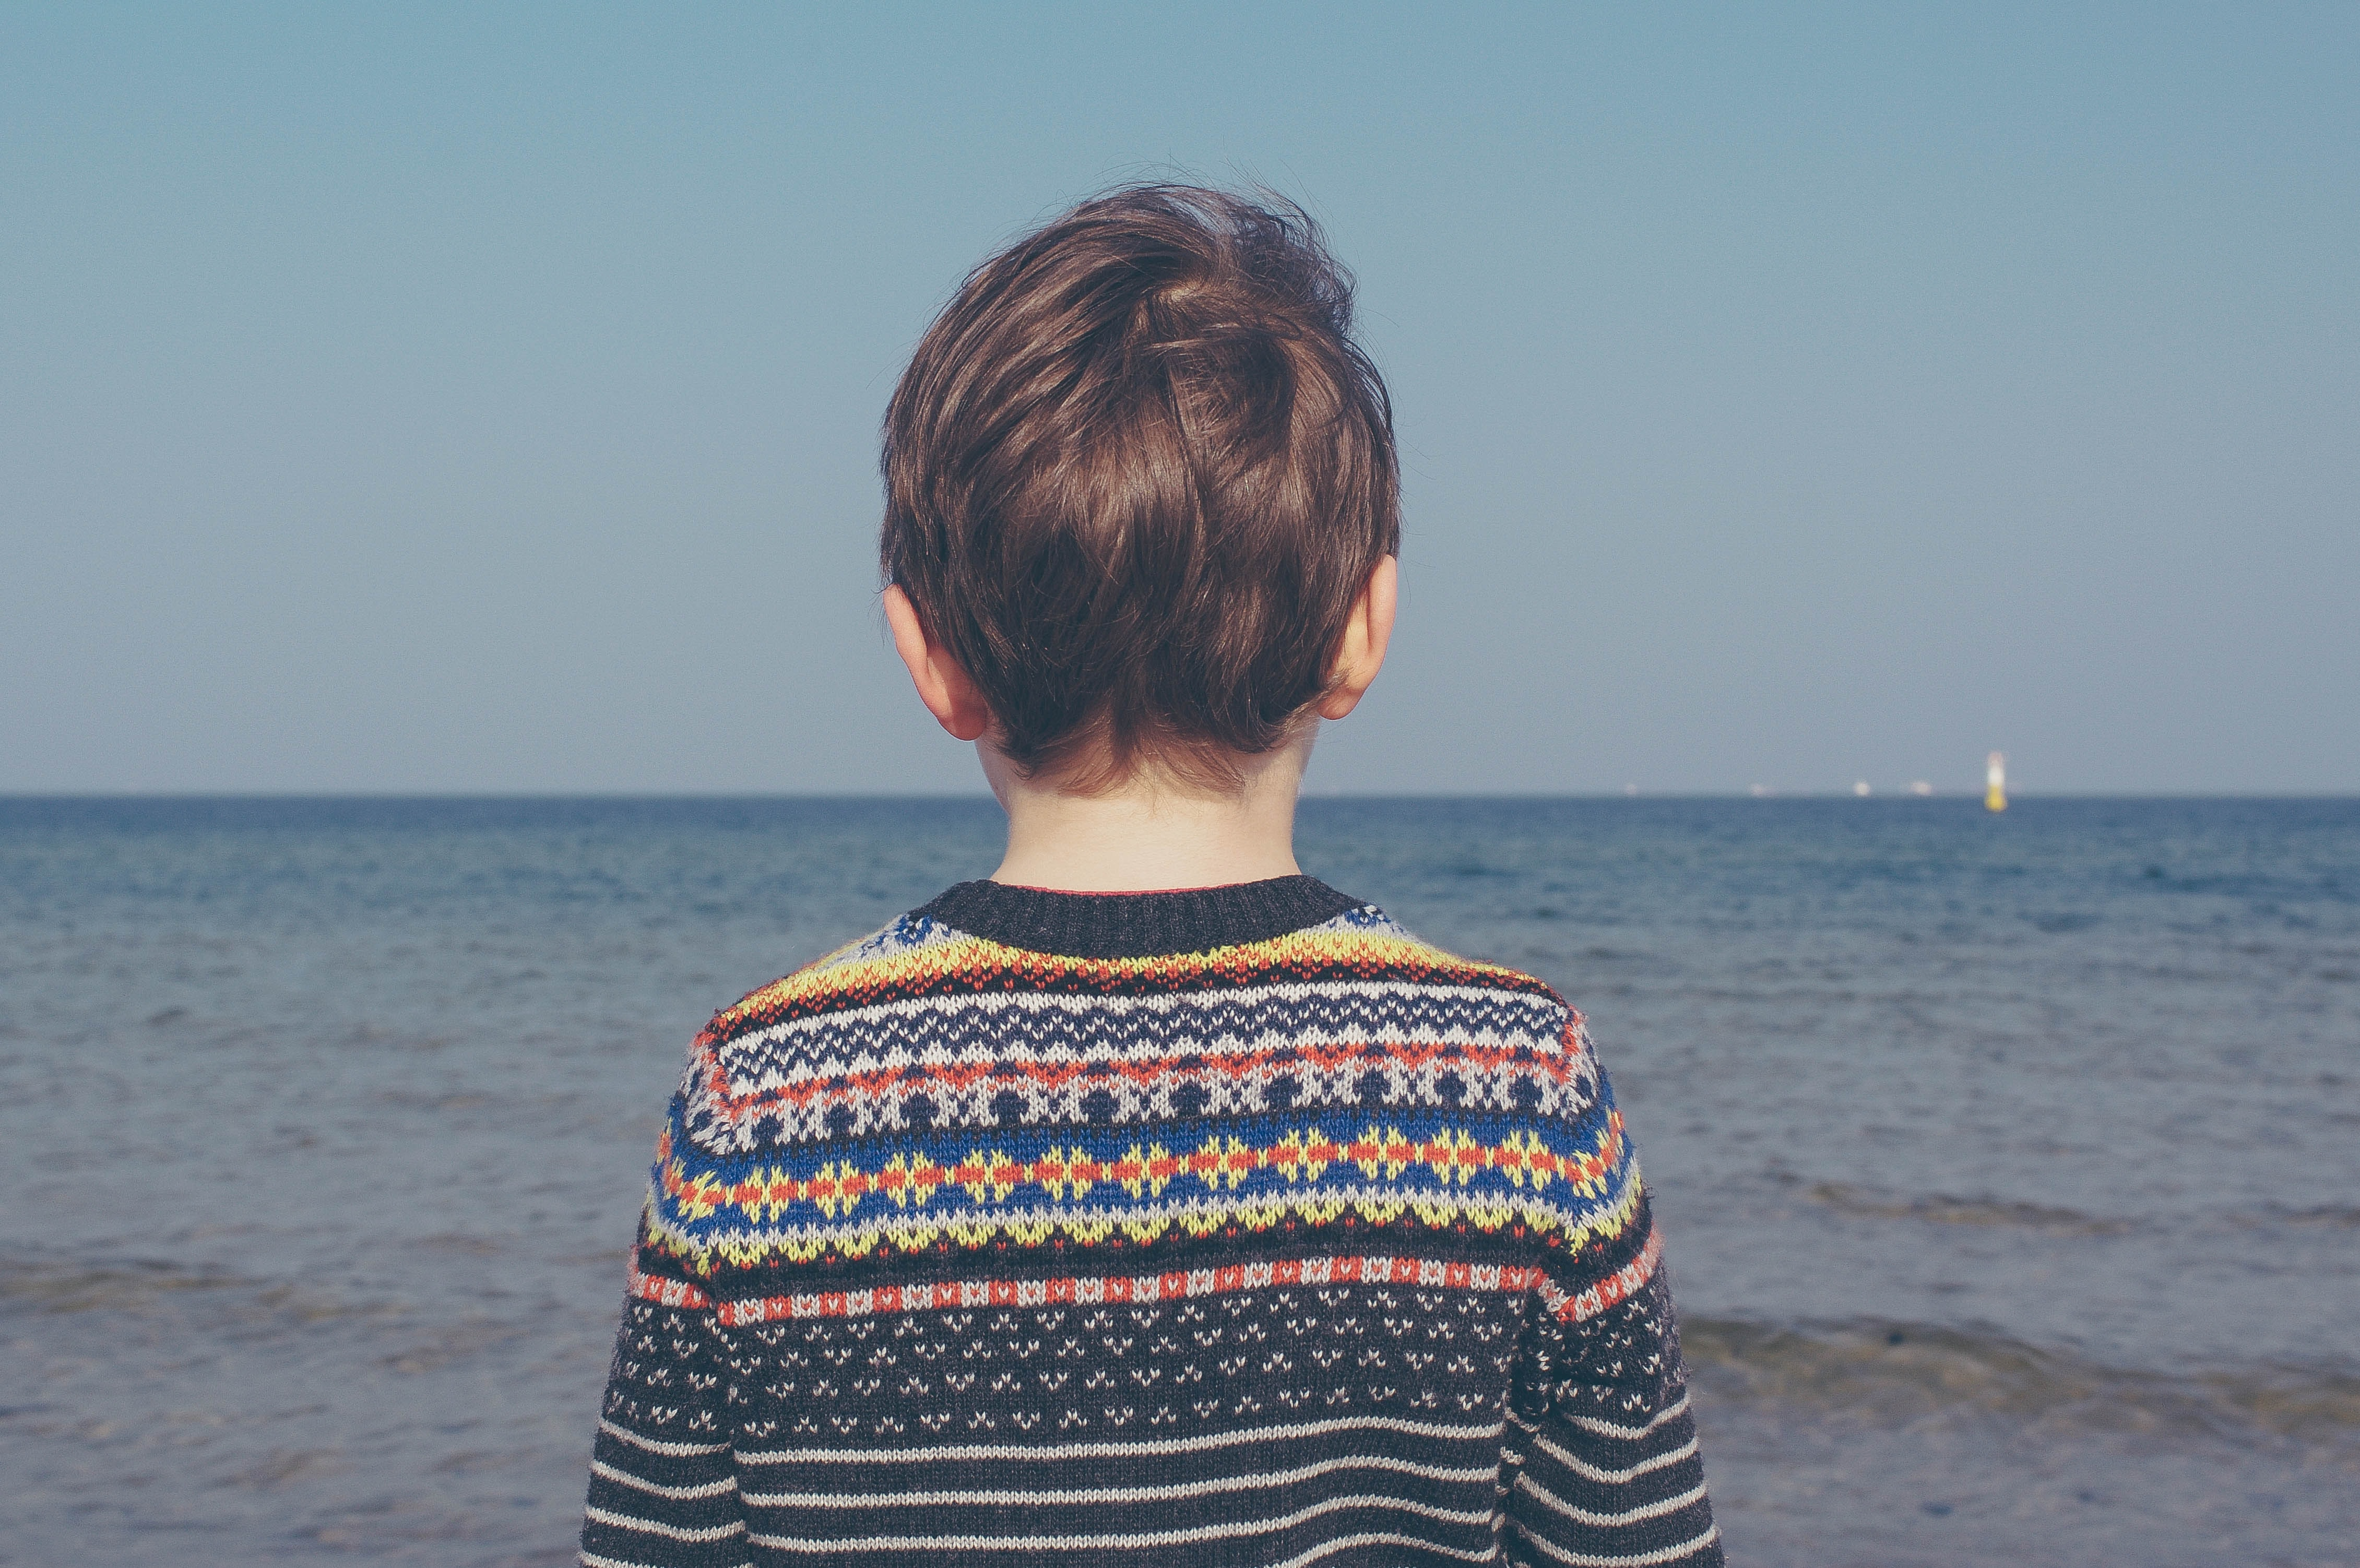 person wearing multicolored striped floral sweater facing the sea